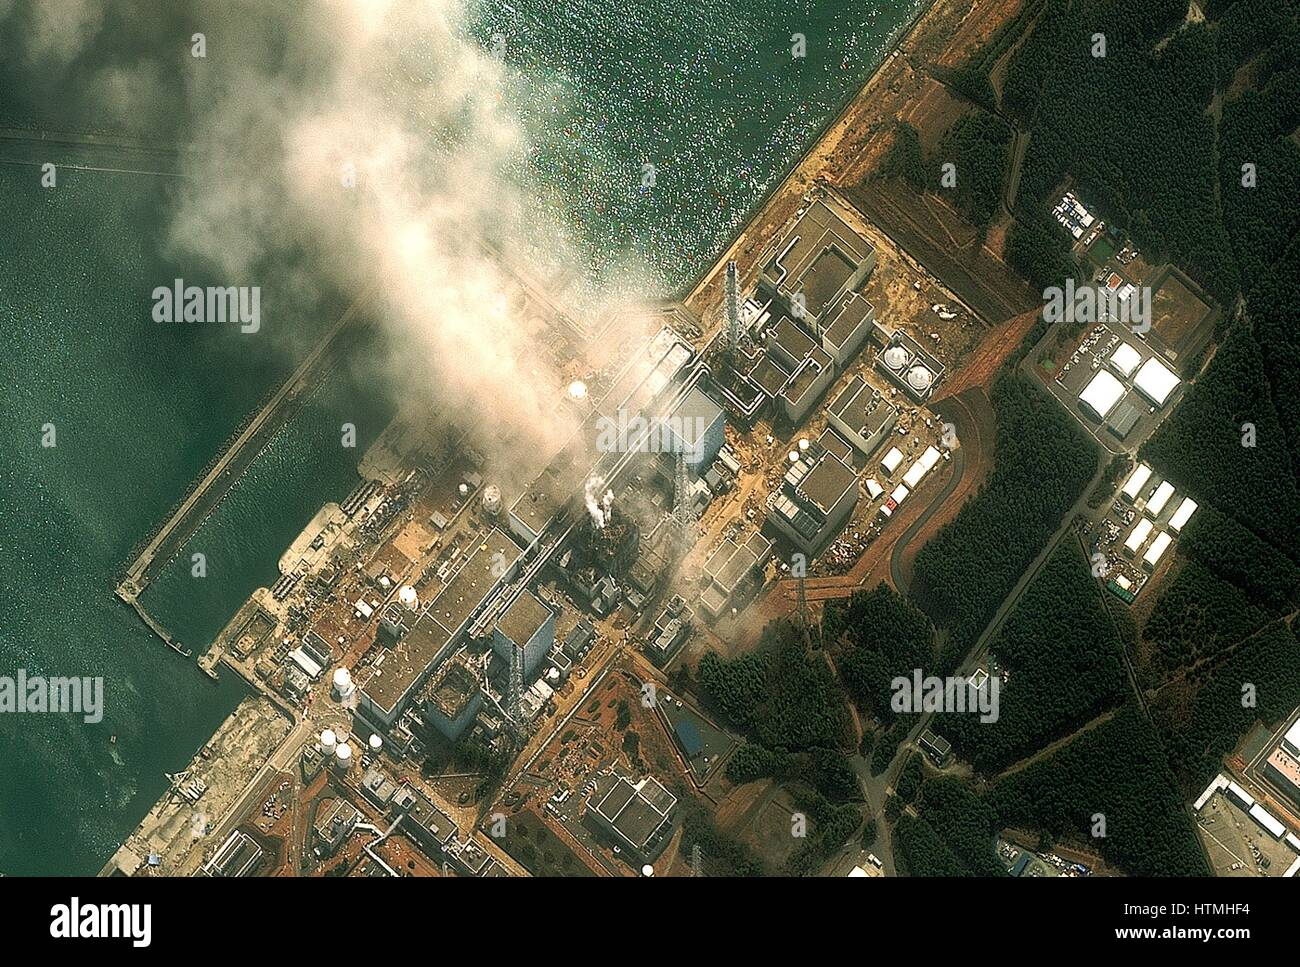 Fukushima Daiichi reactor in North eastern Japan 2011 Satellite view of earthquake damage to the reactors march14th - Stock Image